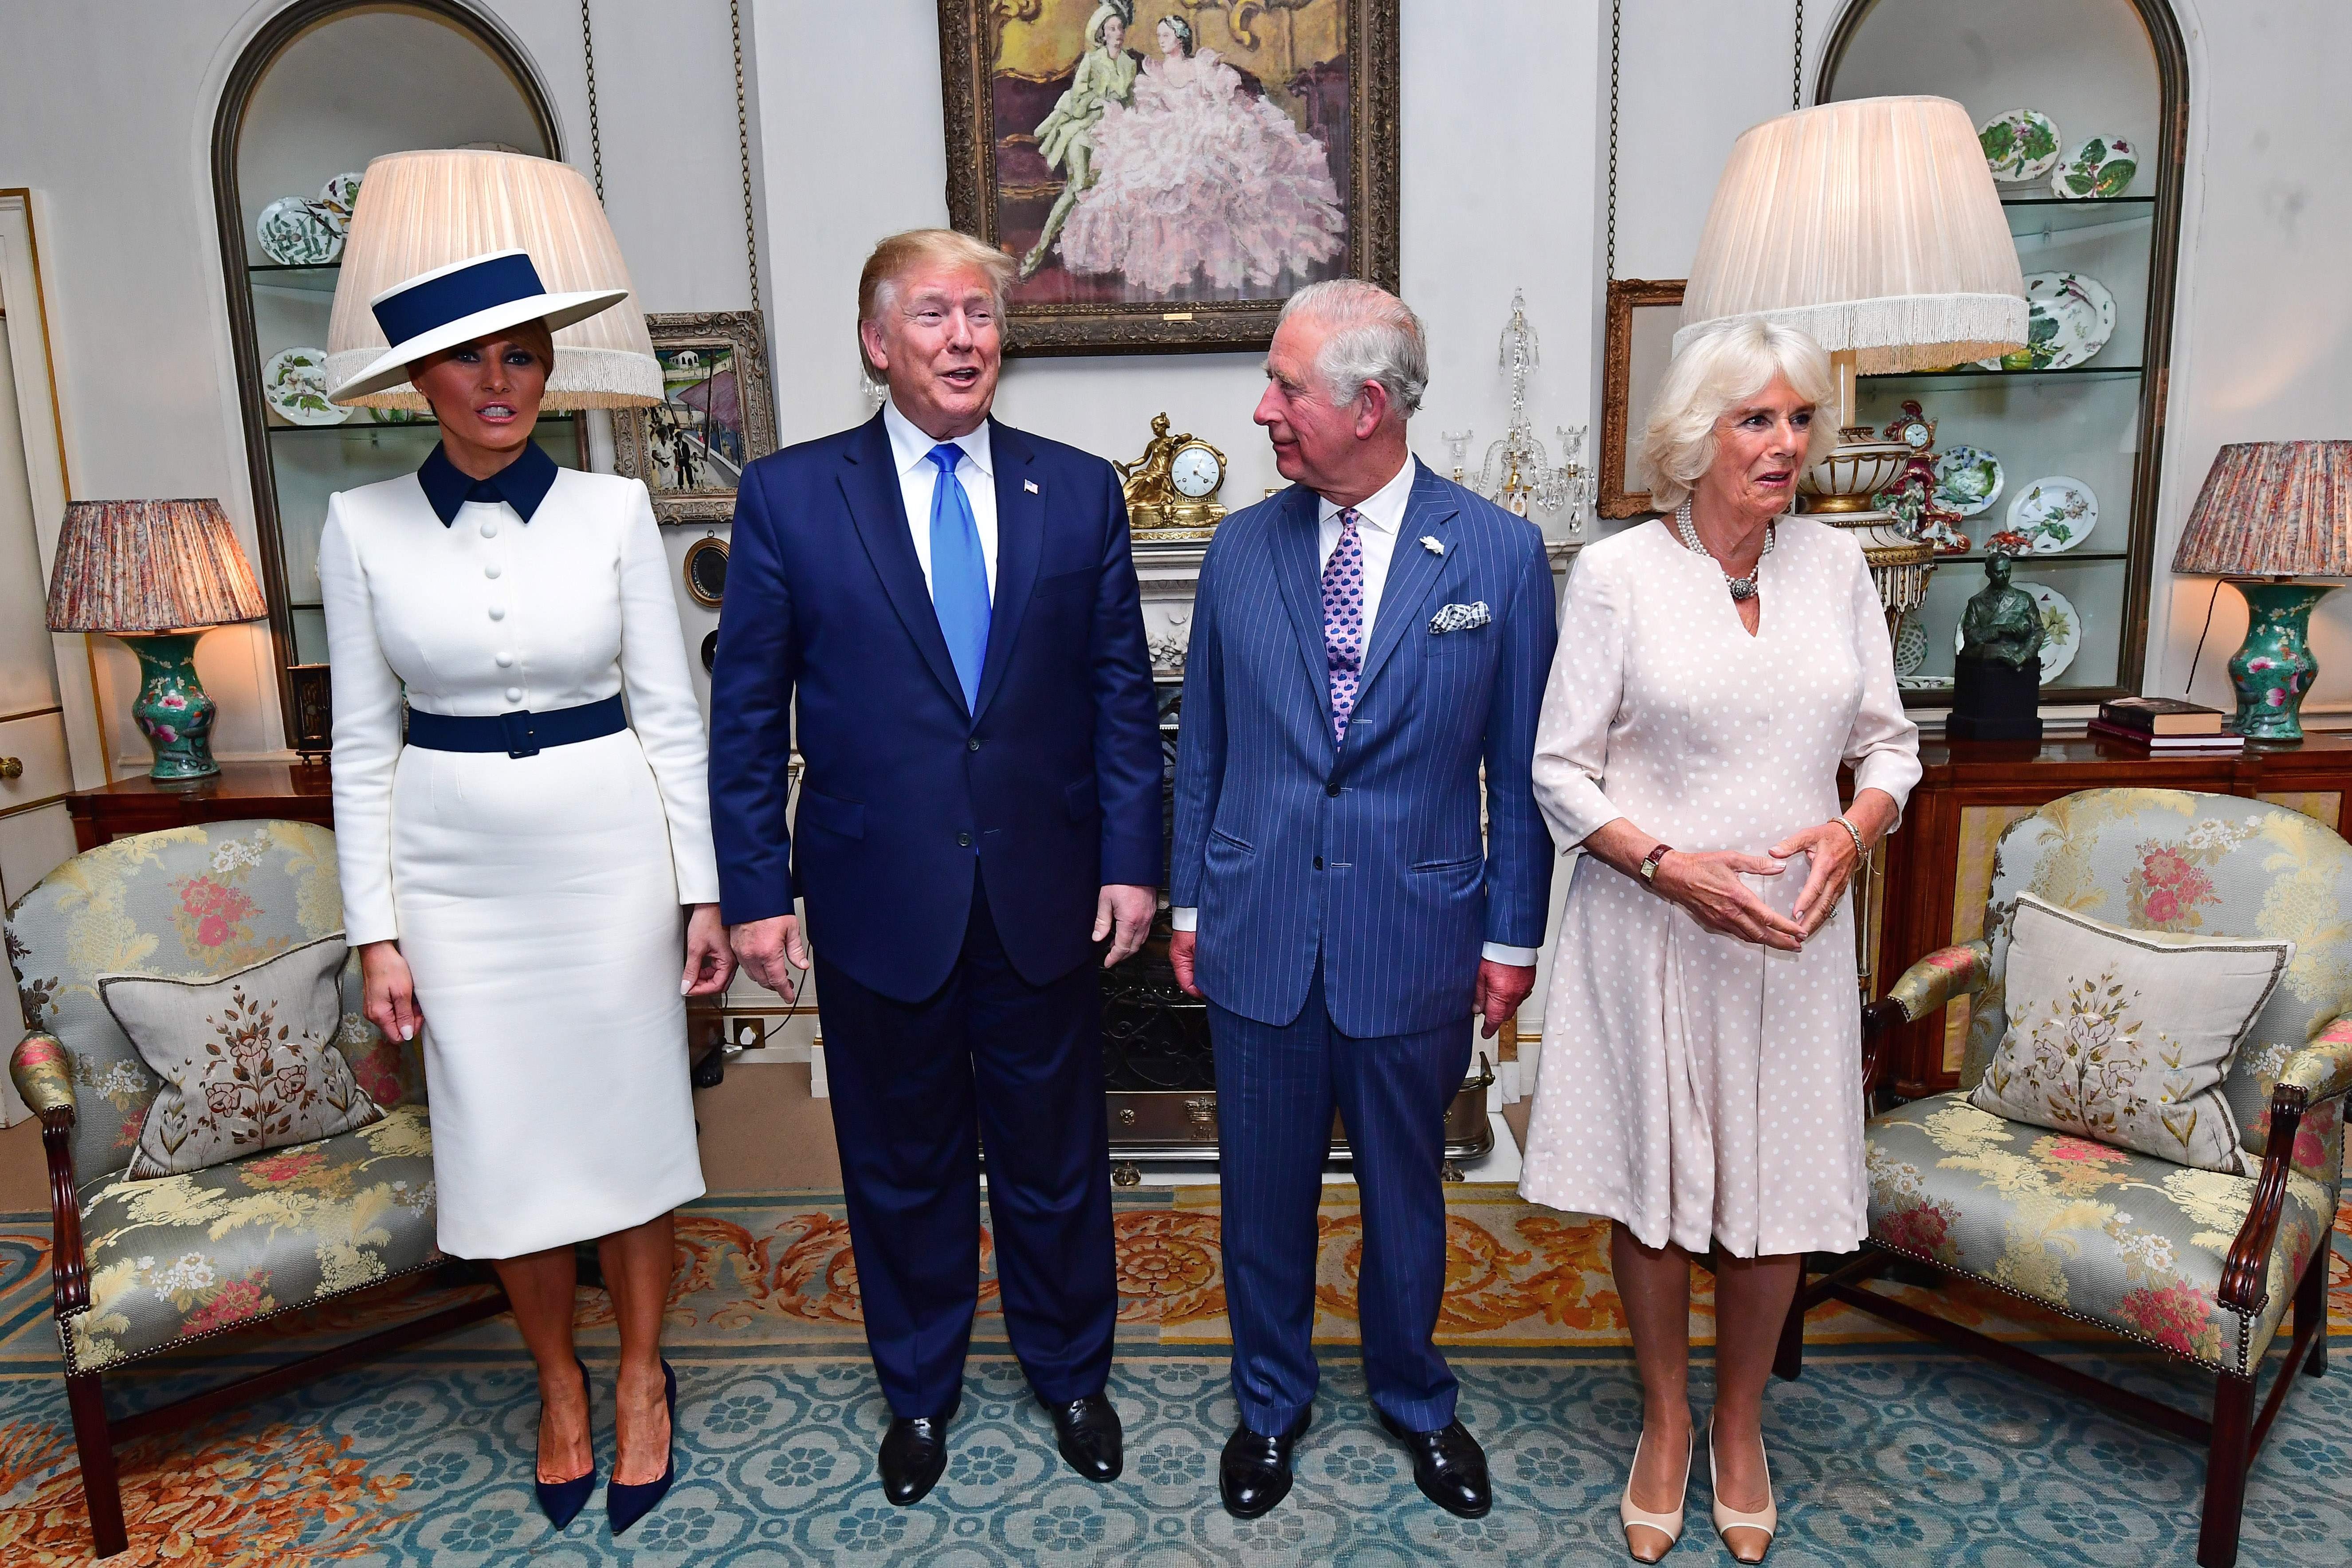 LONDON, ENGLAND - JUNE 03: U.S. President Donald Trump (2nd L) and his wife Melania Trump (L)  take tea with Prince Charles, Prince of Wales (2nd R) and Camilla, Duchess of Cornwall (R) at Clarence House on June 3, 2019 in London, England. President Trump's three-day state visit will include lunch with the Queen, and a State Banquet at Buckingham Palace, as well as business meetings with the Prime Minister and the Duke of York, before travelling to Portsmouth to mark the 75th anniversary of the D-Day landings.  (Photo by Victoria Jones - WPA Pool/Getty Images)